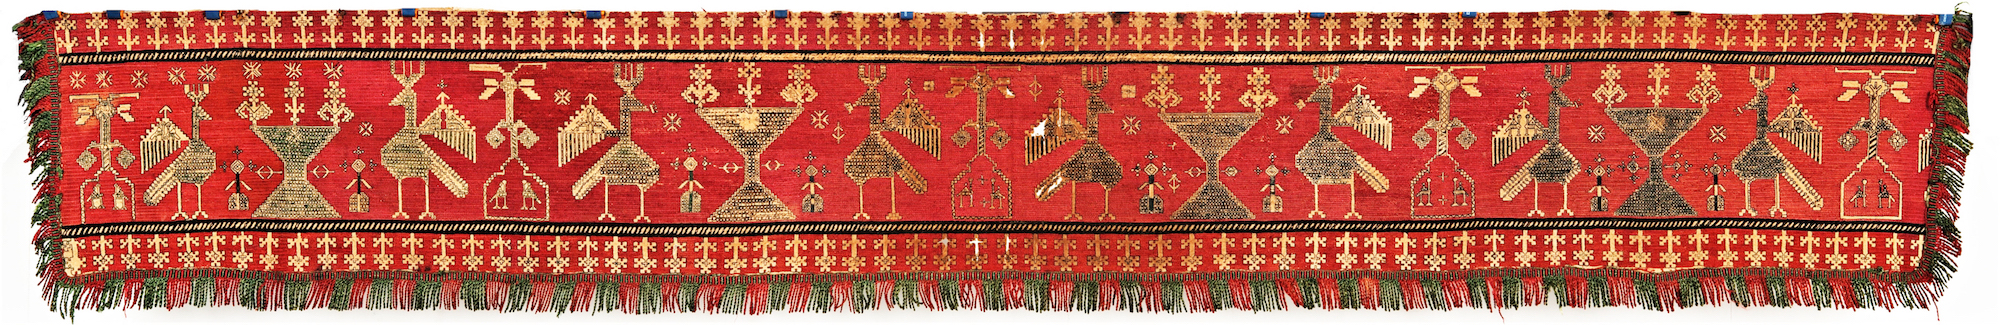 Azemmour embroidery